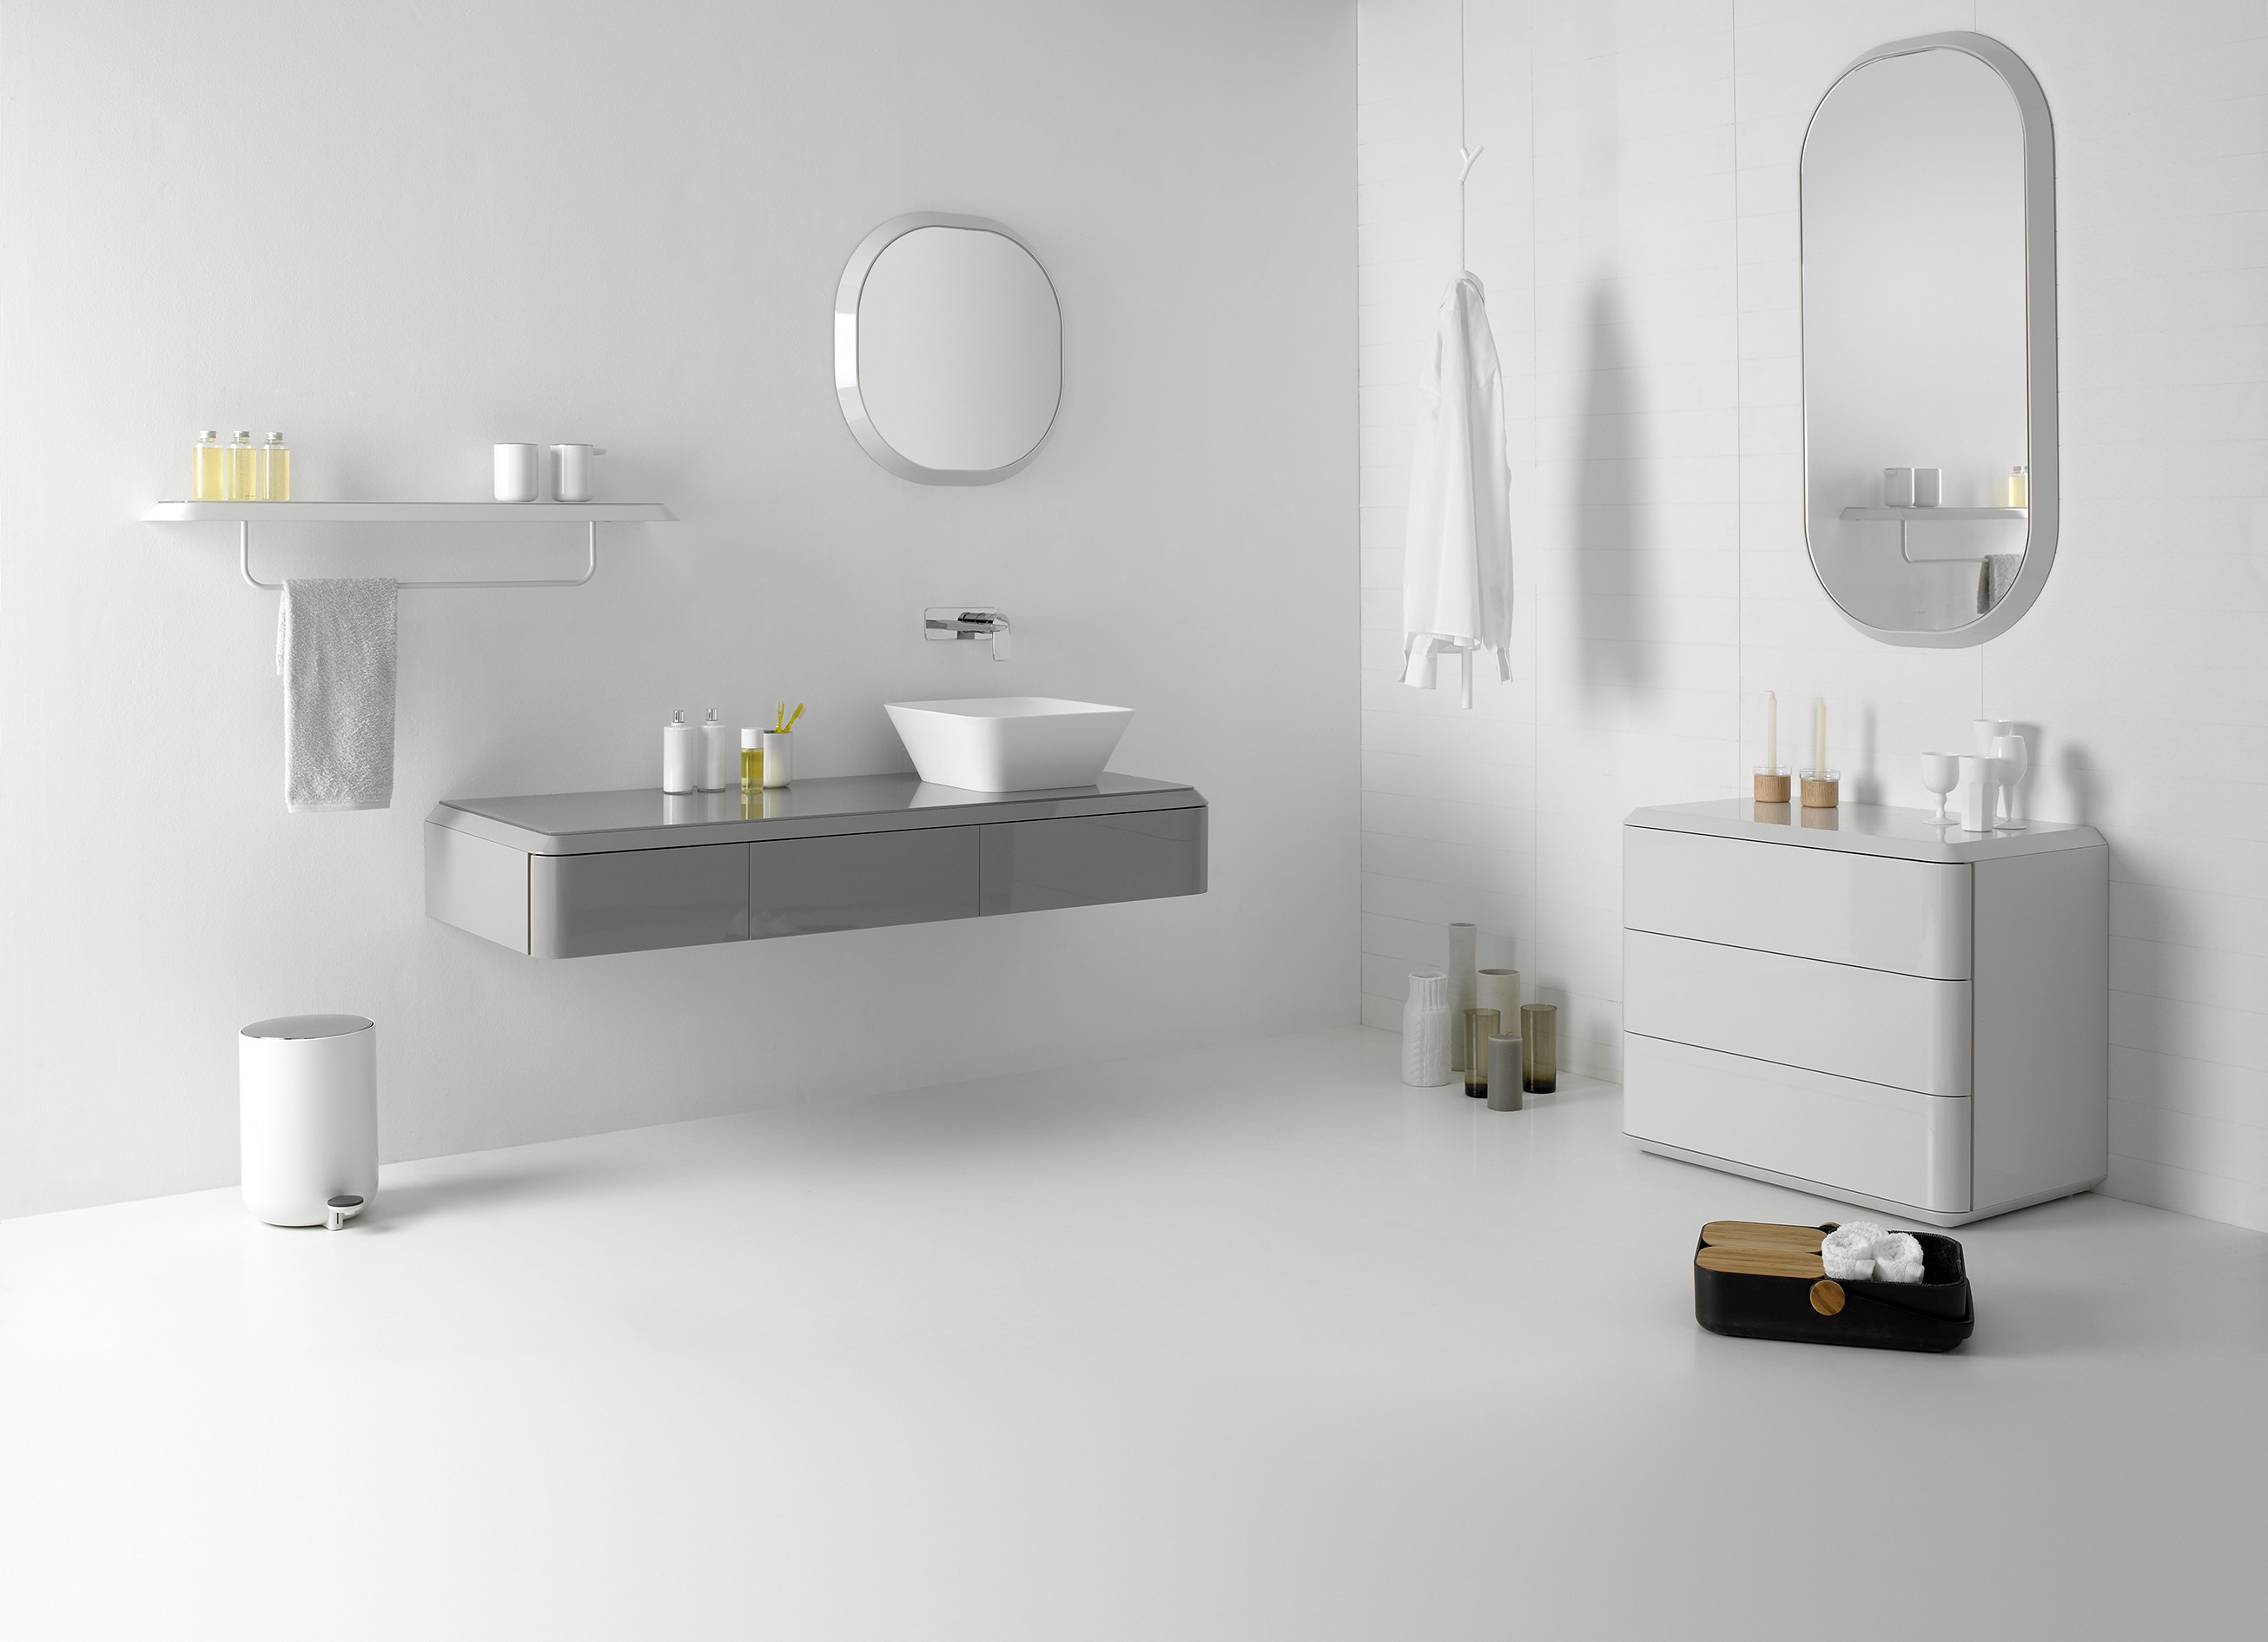 miroir avec cadre pour salle de bain miroir rond collection fluent by inbani design arik levy. Black Bedroom Furniture Sets. Home Design Ideas